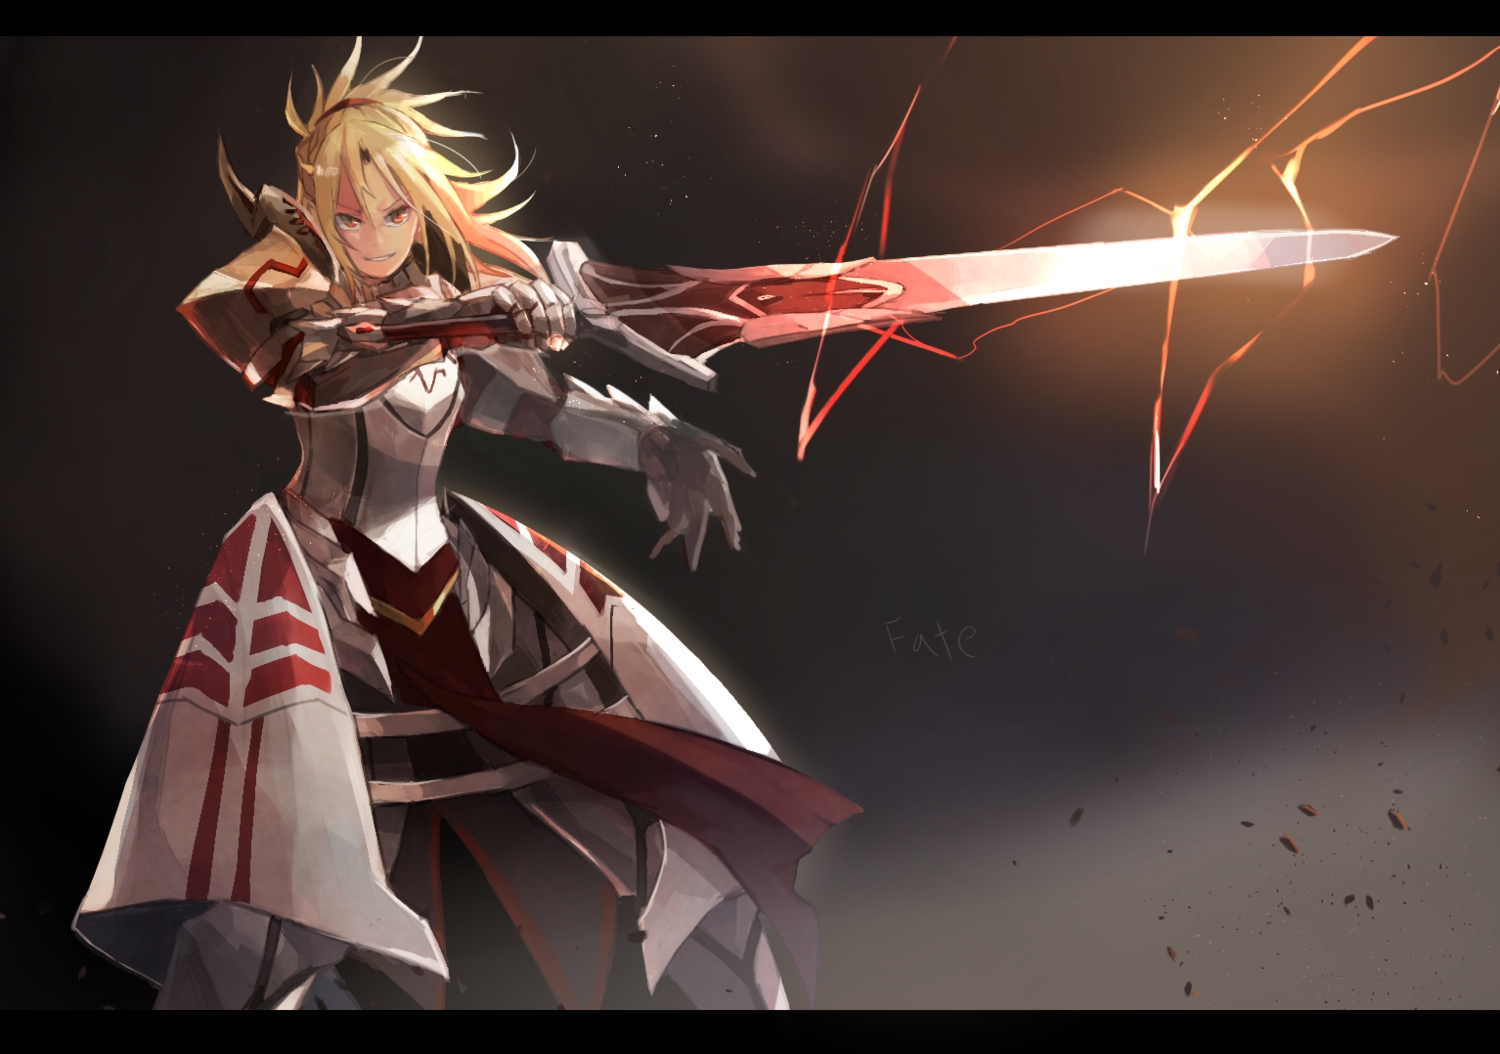 armor blonde_hair dress fate/apocrypha fate/grand_order fate_(series) mono_(jdaj) mordred orange_eyes short_hair sword weapon